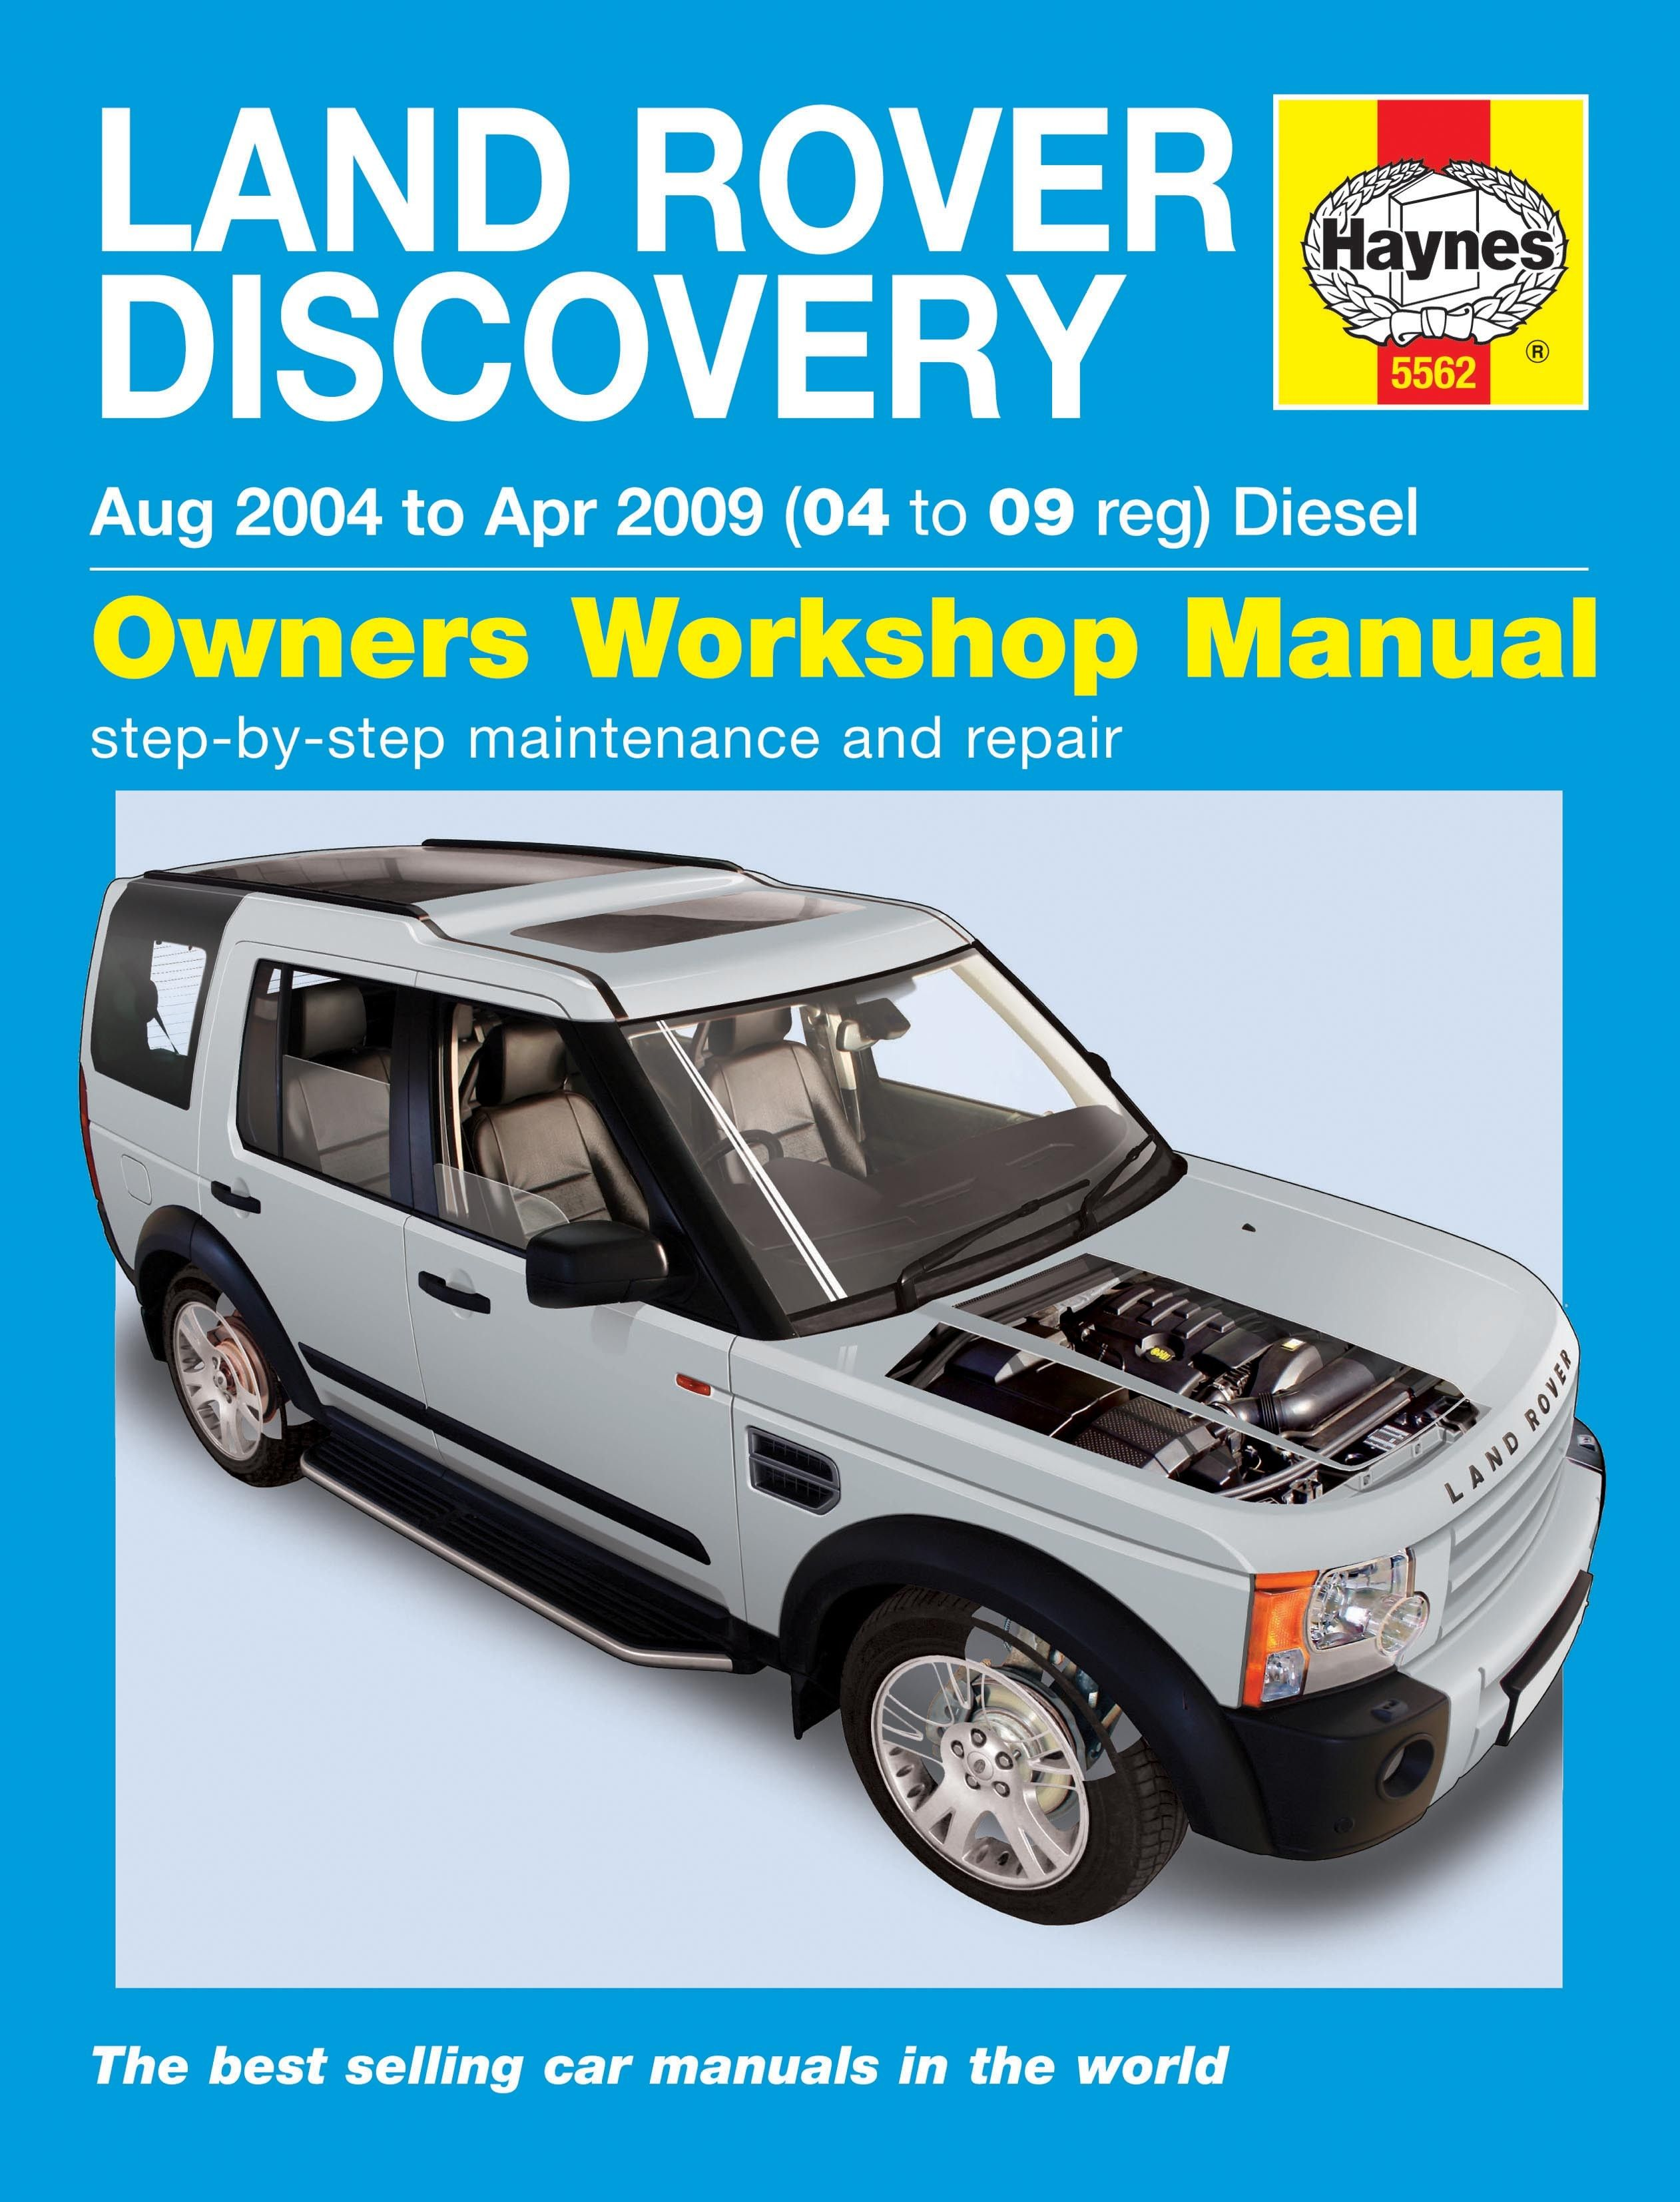 Haynes Discovery 3 Owners Workshop Manual Diesel Engine, Workshop, Repair  Manuals, Land Rover